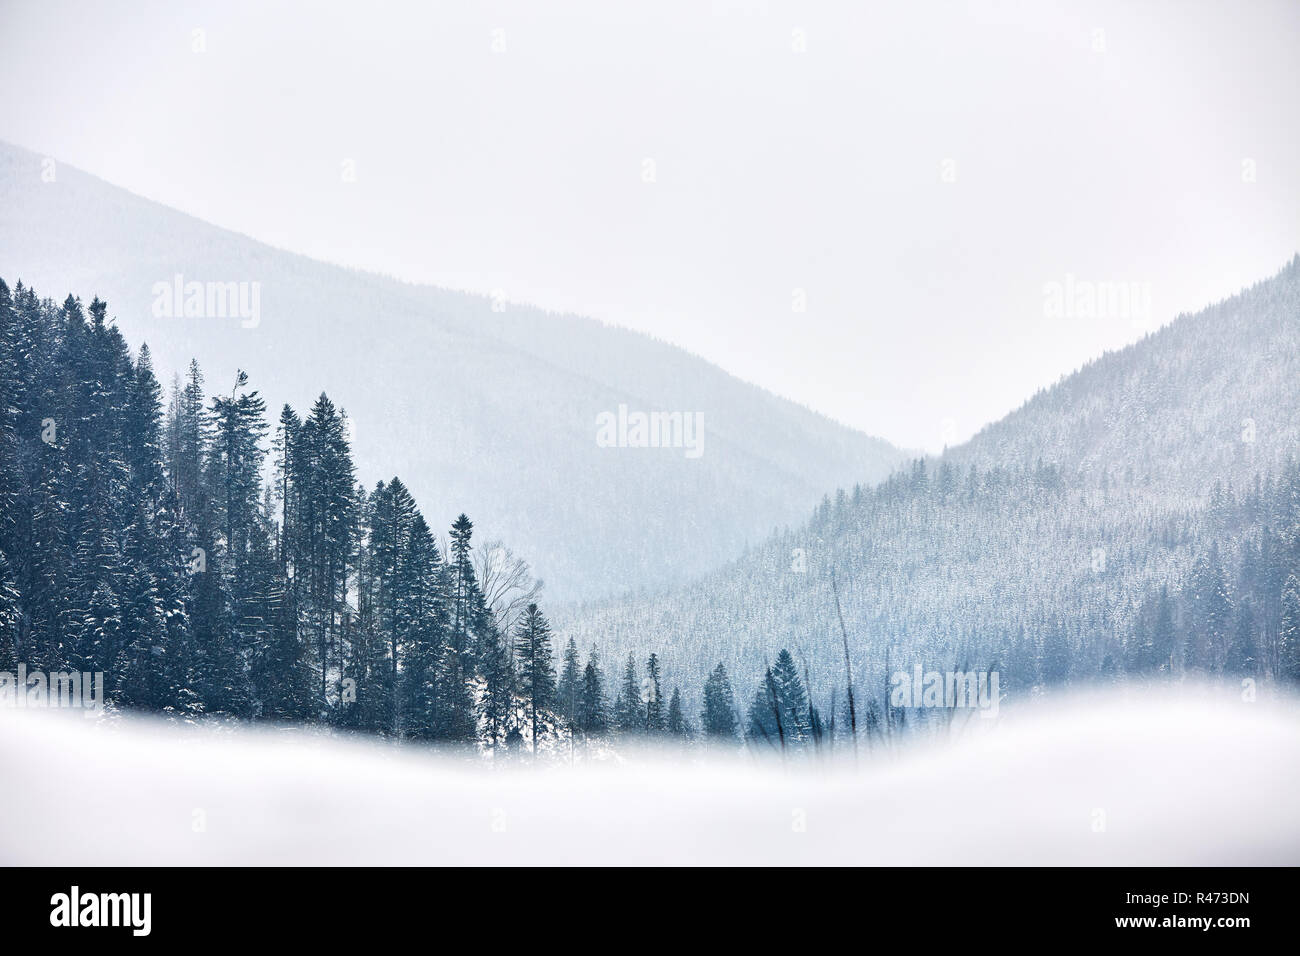 Multi layered mountain winter landscape. Slopes and evergreen woods covered with snow. Snowy pine and fir tree forest. Snowfall on a cold frosty day in the mountains gorge. Christmas background. - Stock Image